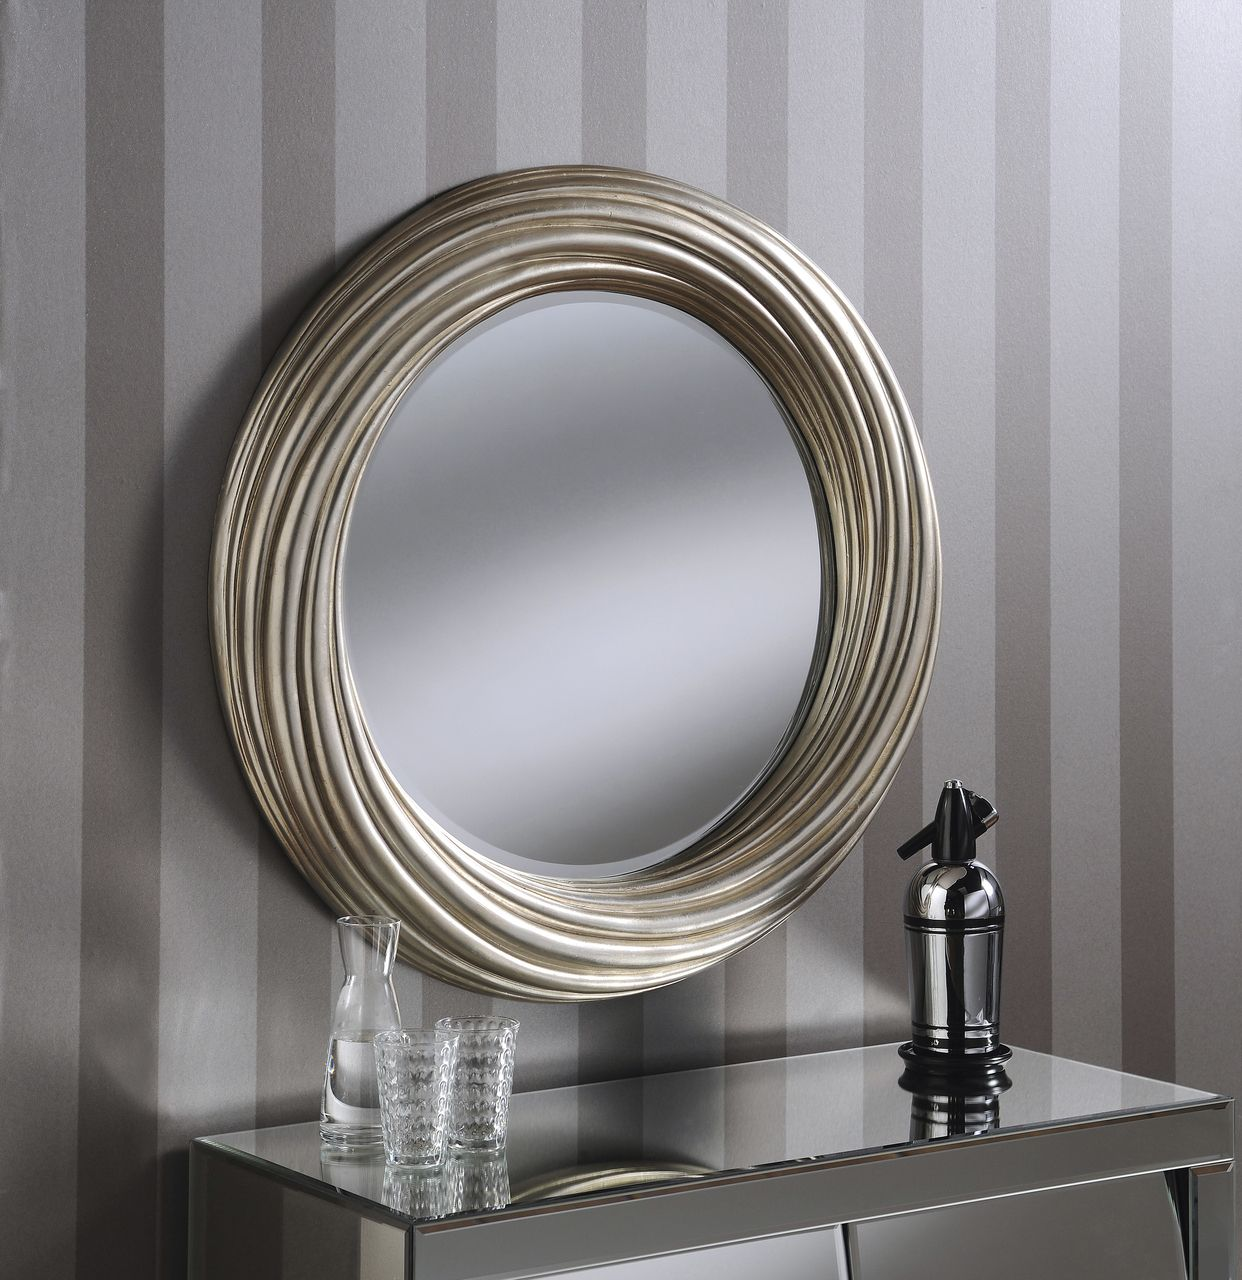 Adele large round modern wall mirror silver frame art deco antique 32 82cm